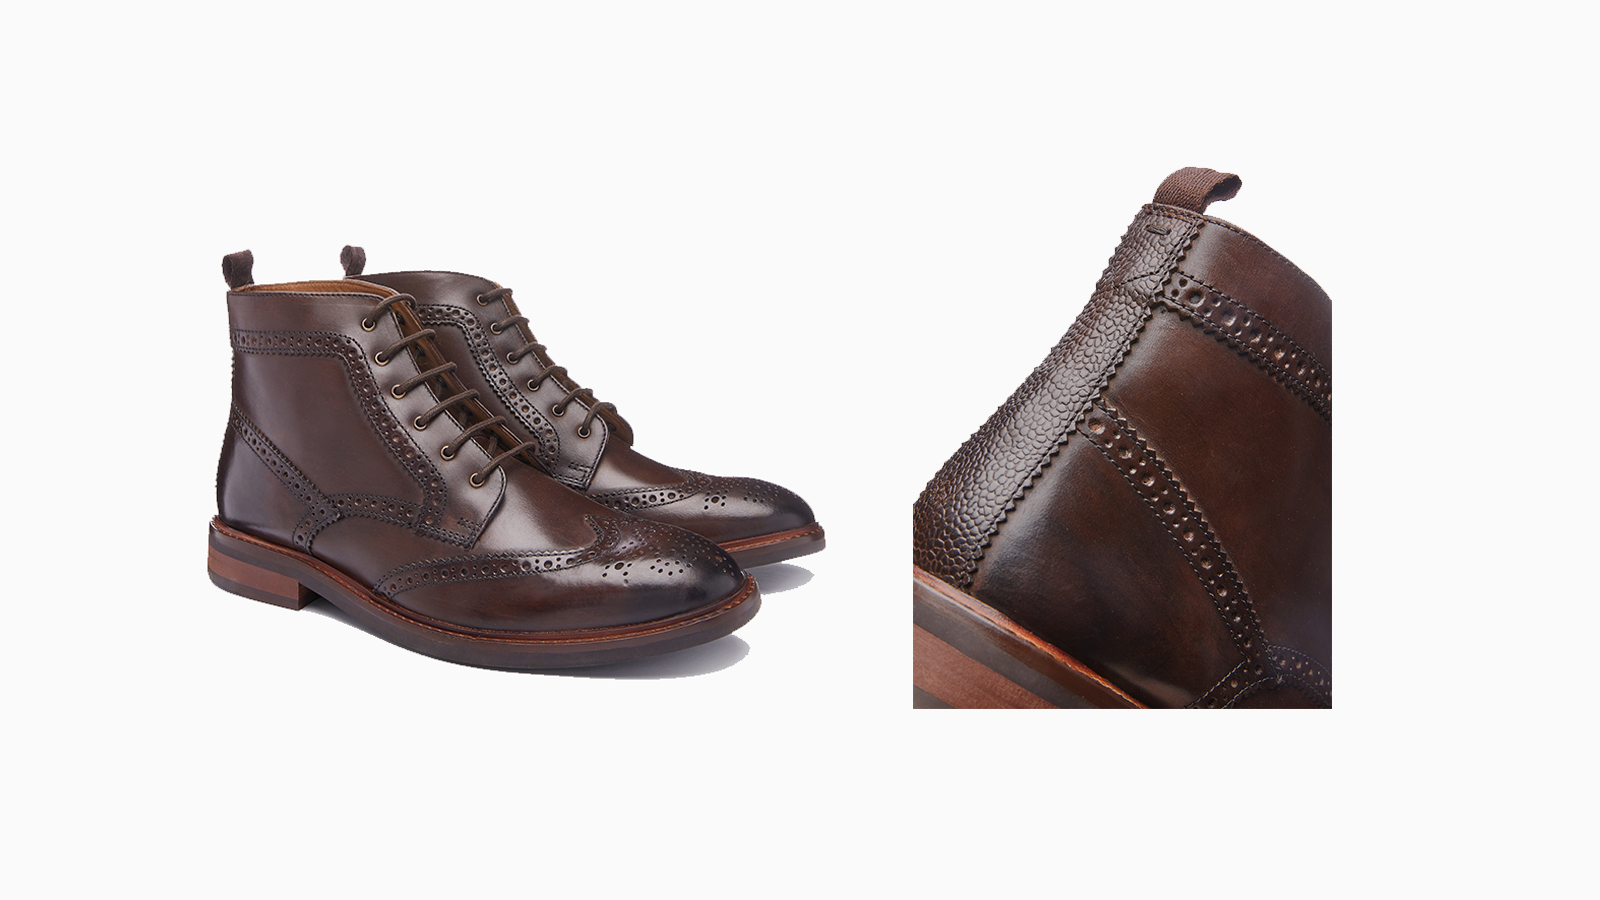 The winter boots to wear now - Chukka boots